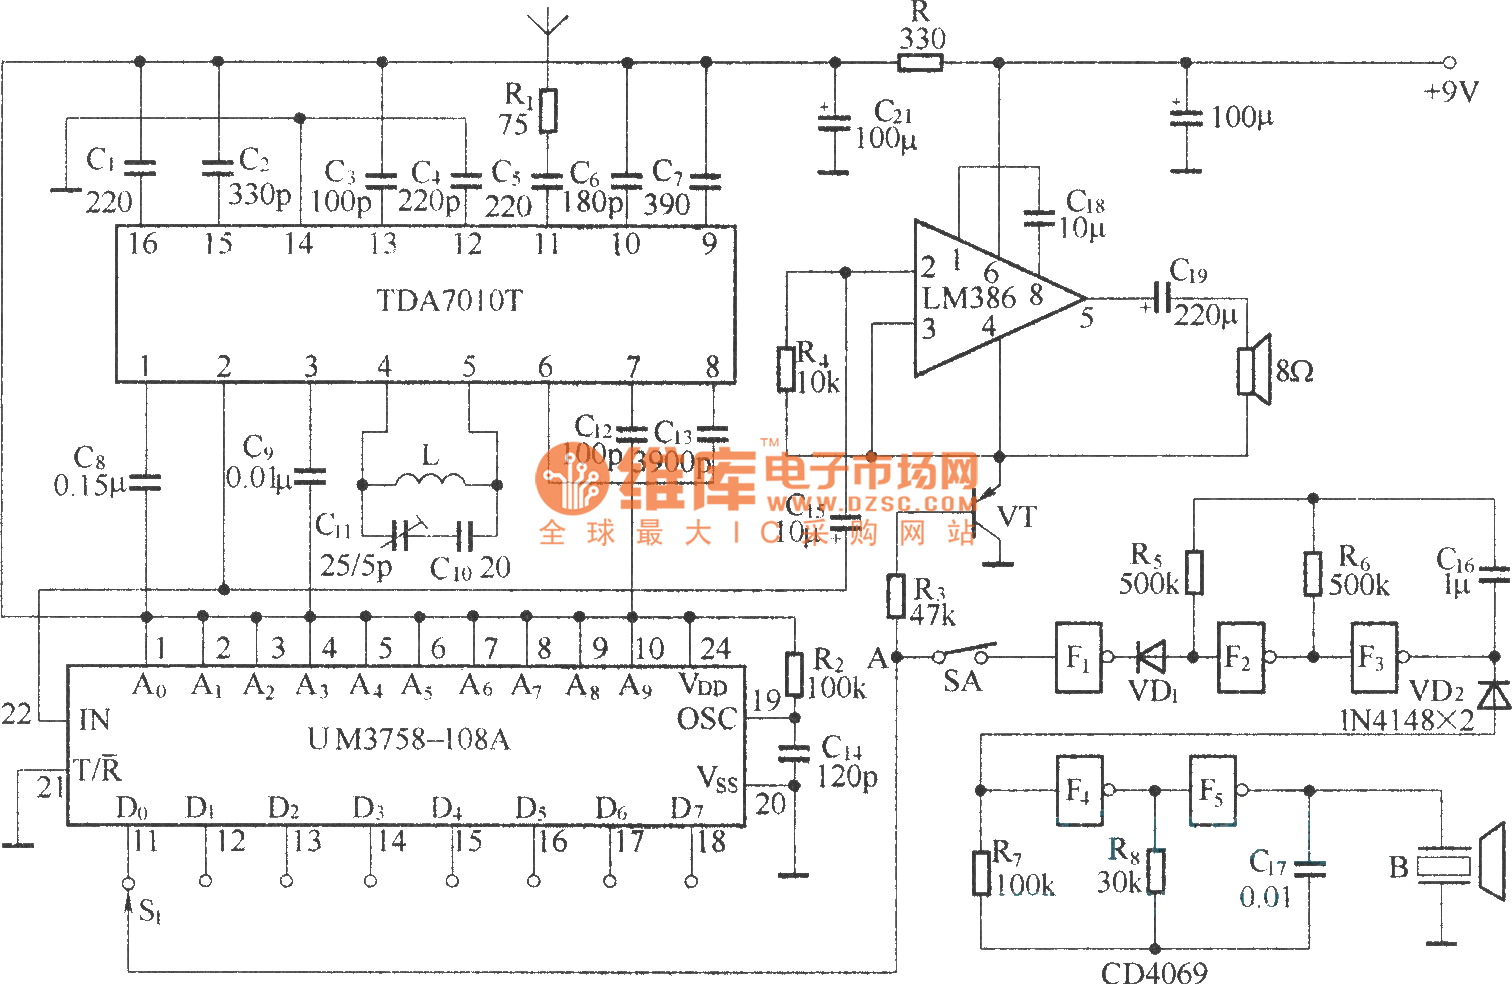 Small Wireless Call System Circuit Diagram Ba1401 Tda7010t Amenvelopedetector Measuringandtestcircuit